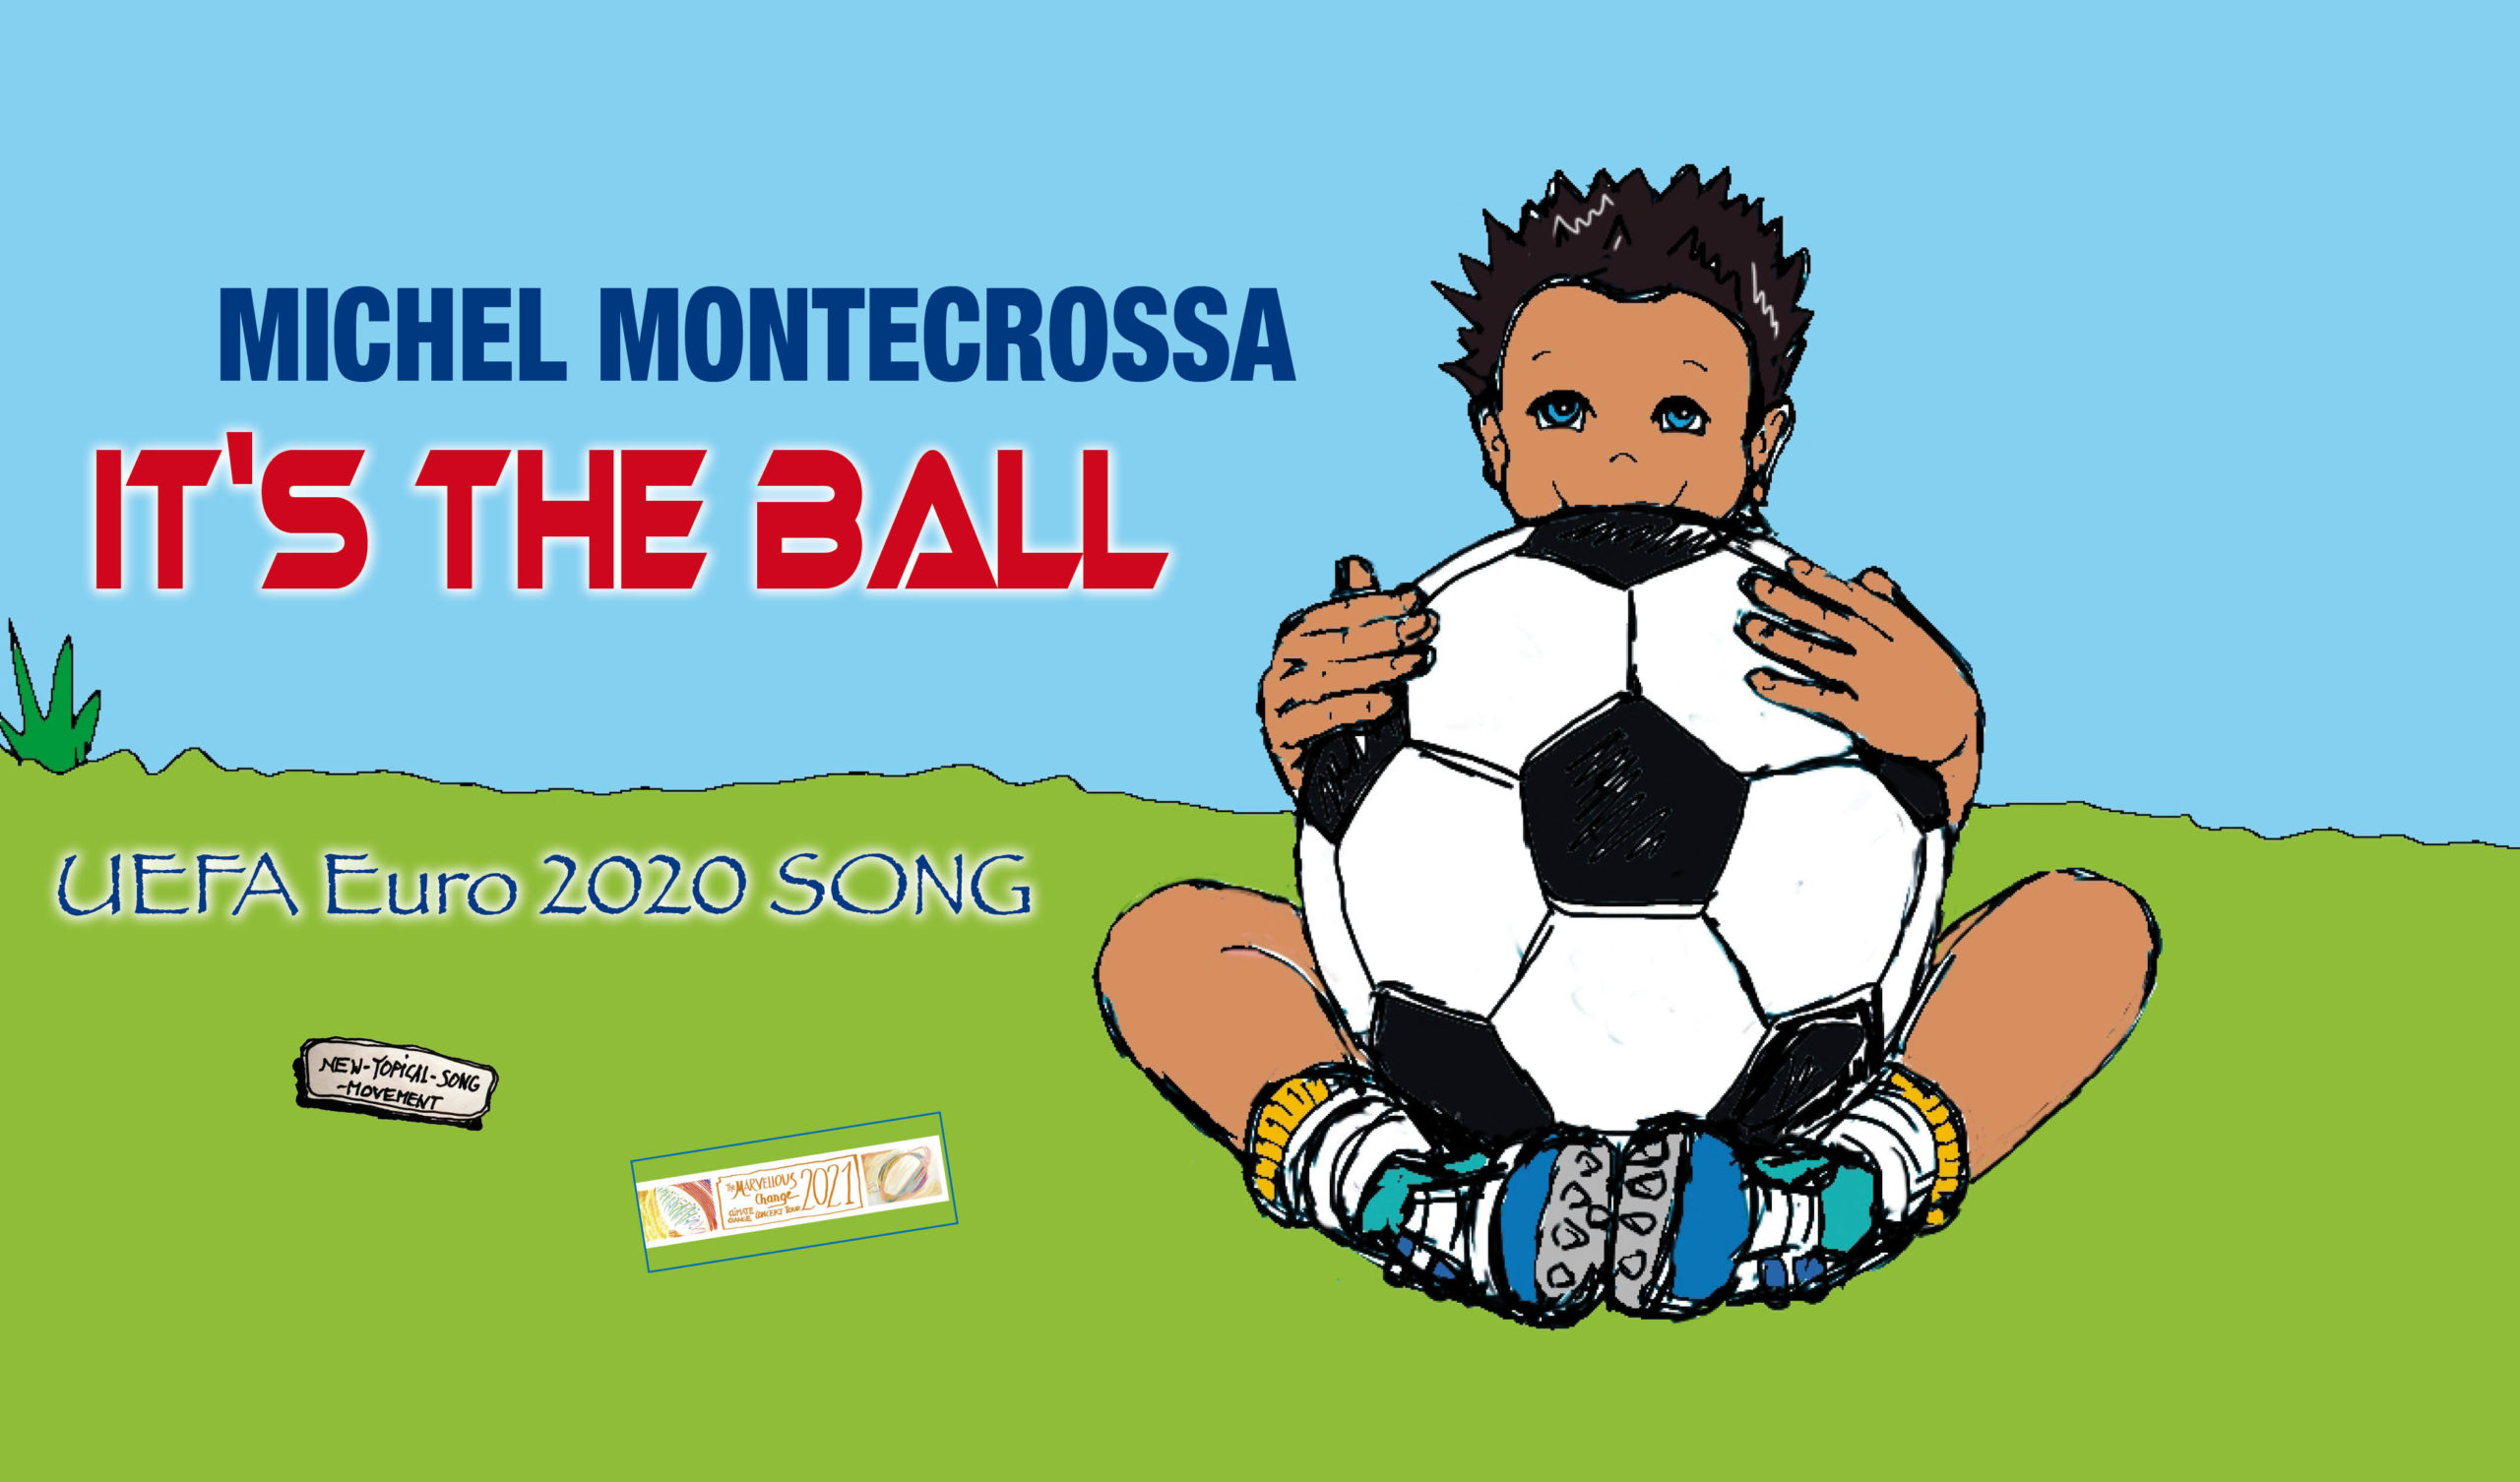 It's The Ball – Michel Montecrossa's New-Topical-Sportsmanship Song & Movie for UEFA Euro 2020